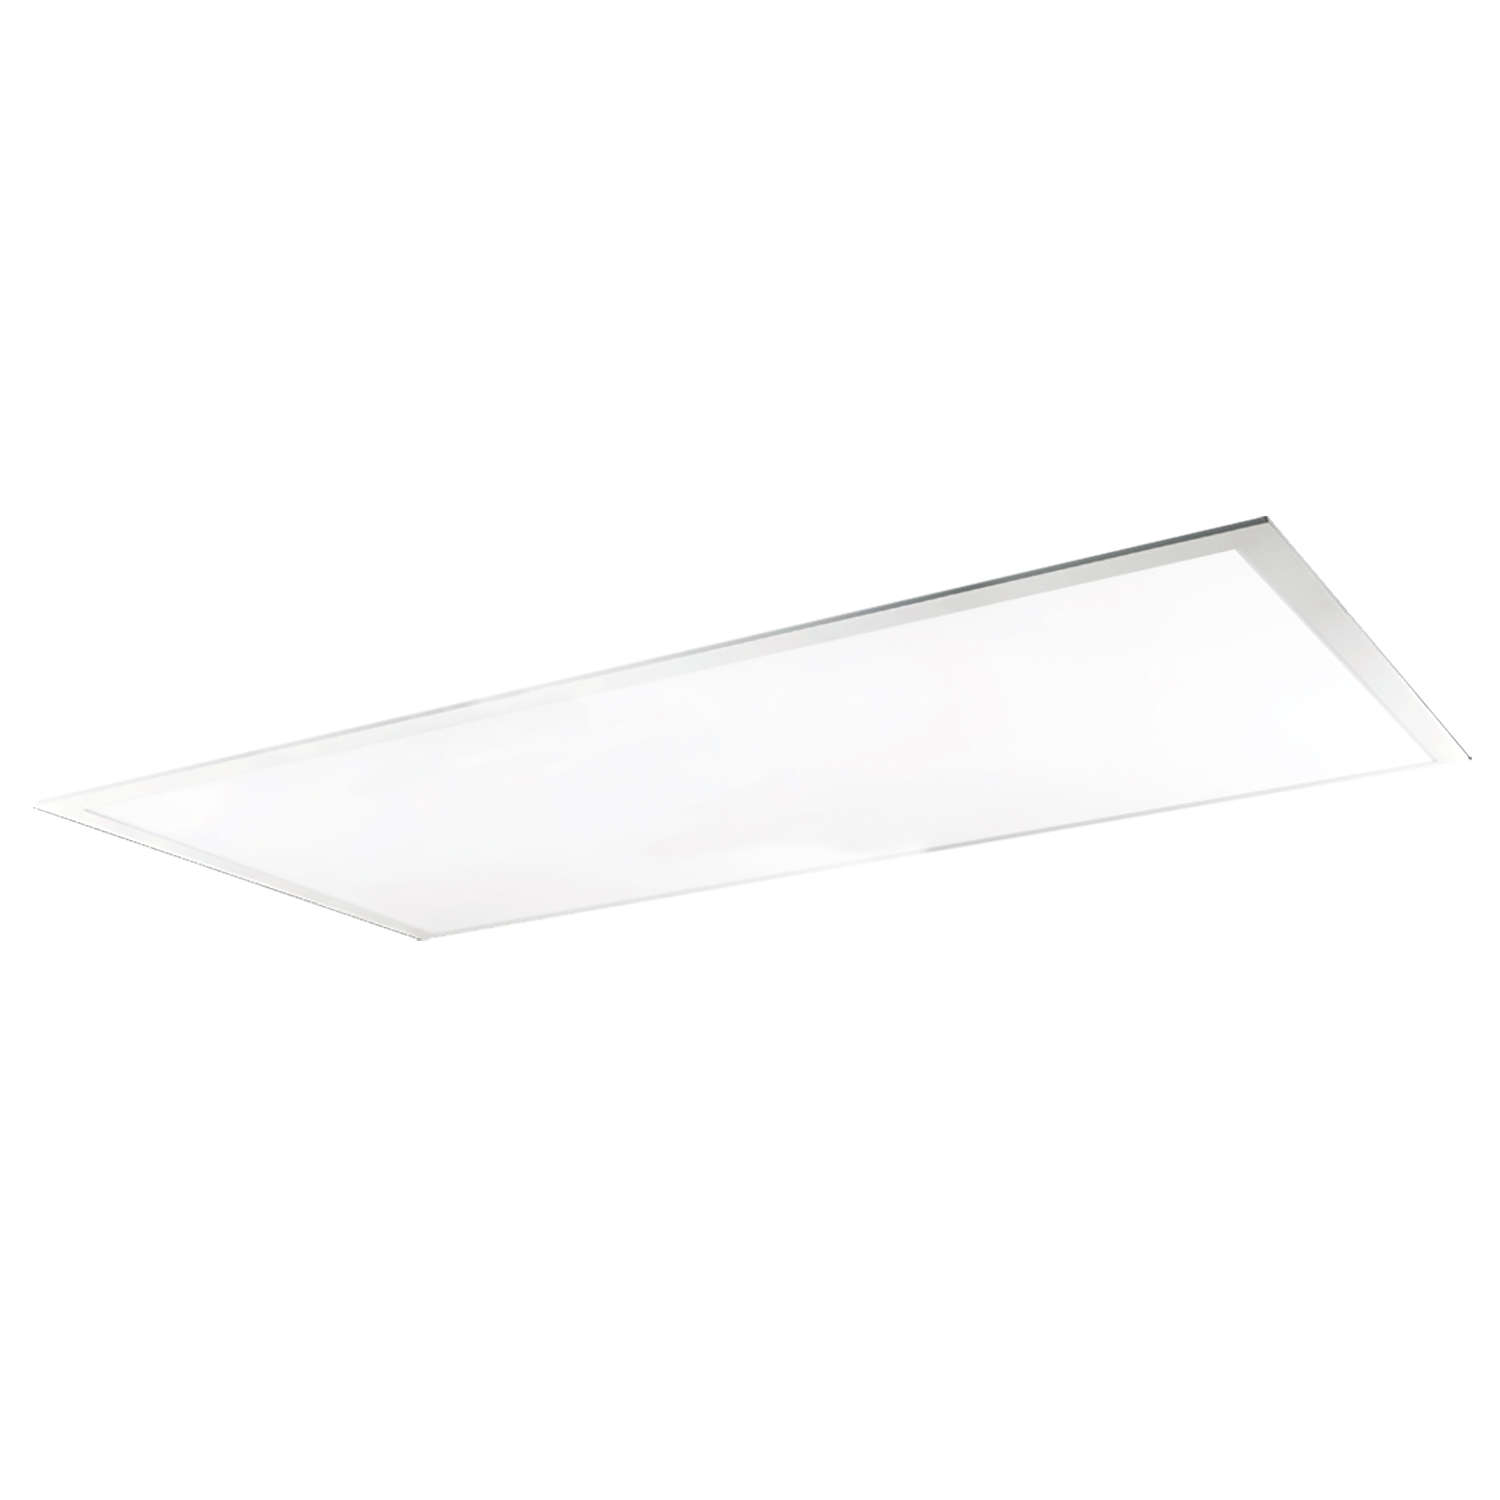 14EPL40/835/LED 81982 ProLED EDGE-LIT FLAT PANEL 1X4 40W 3500K 0-10V DIMMABLE